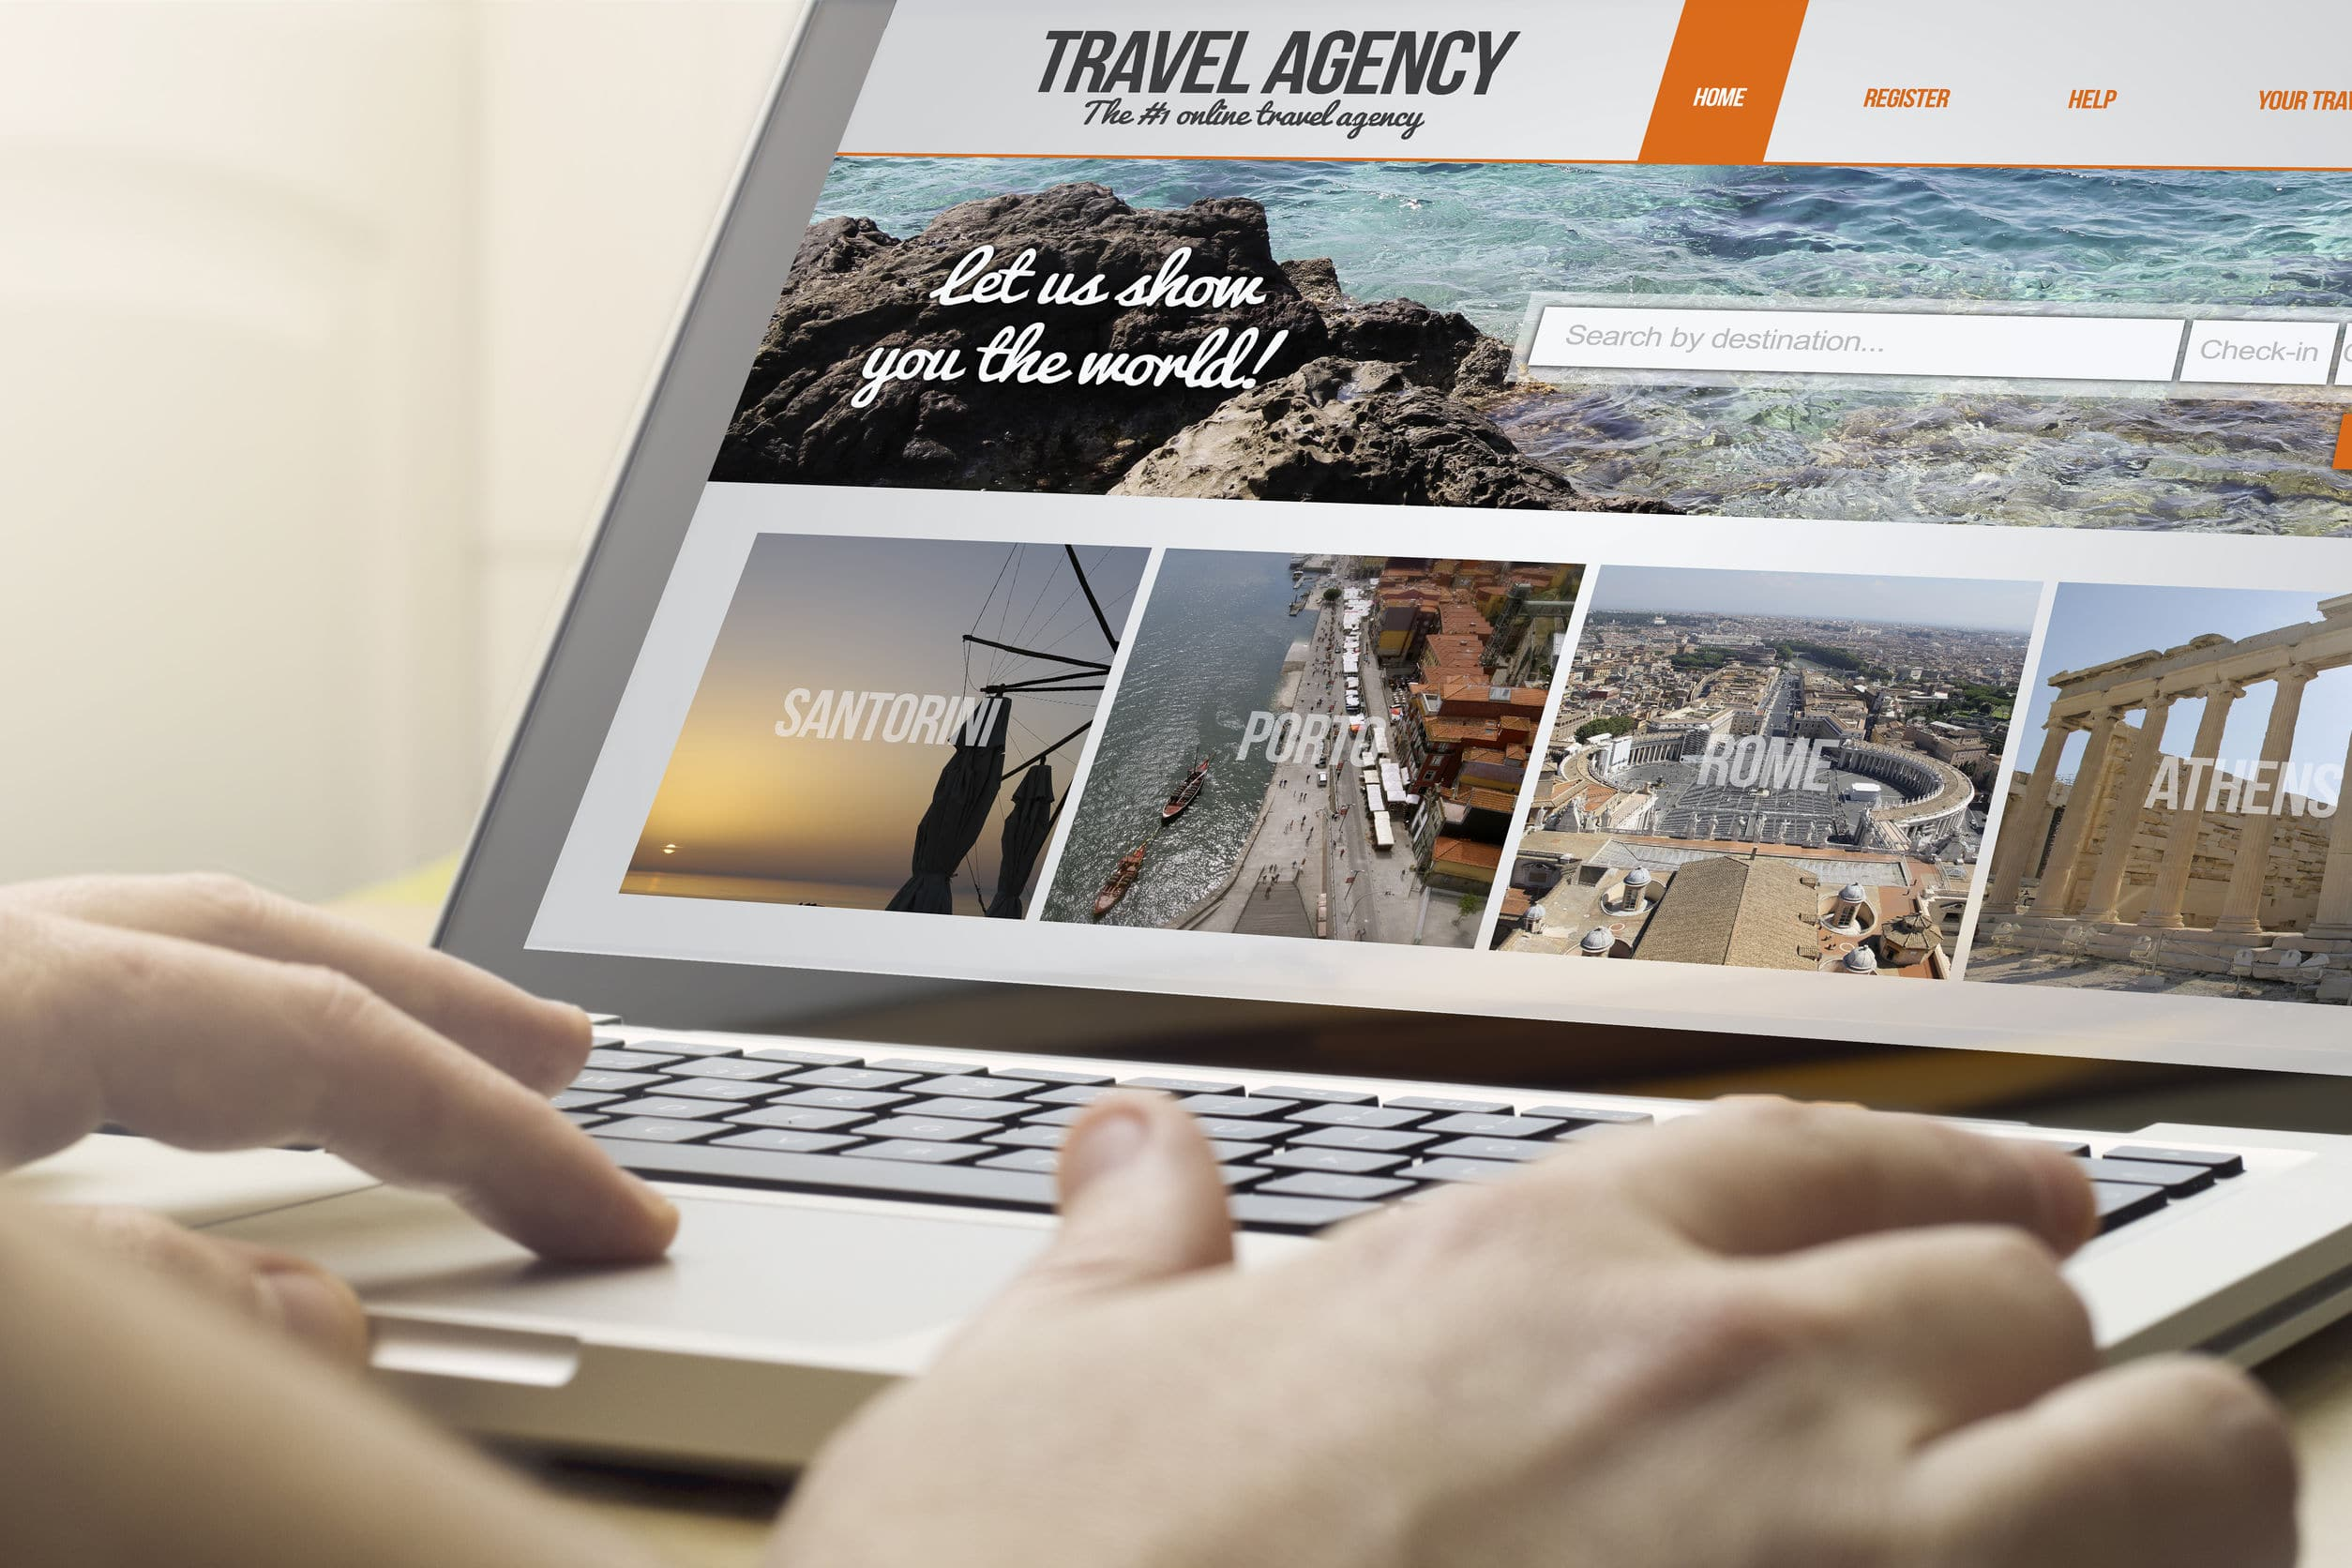 man using a laptop browsing travel agency website